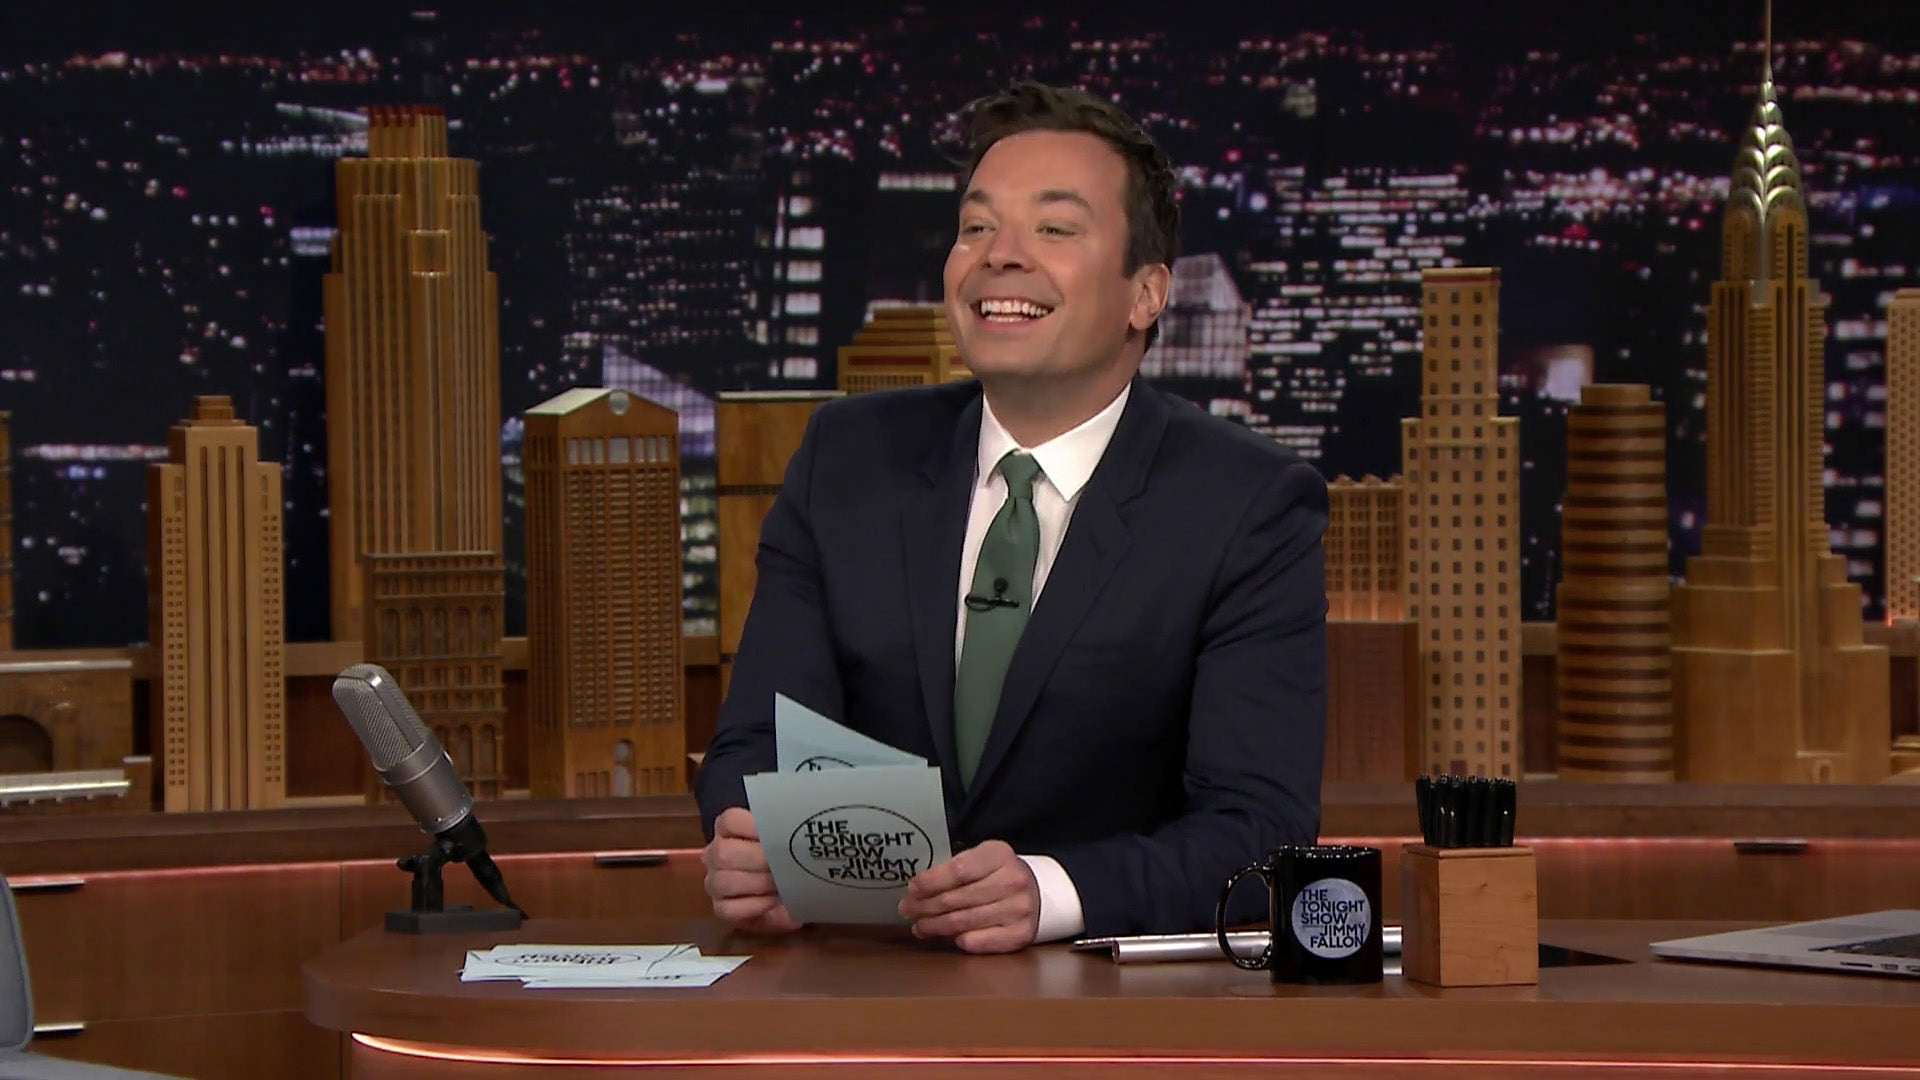 Jimmy Fallon Lists The Pros And Cons Of Traveling By Hyperloop